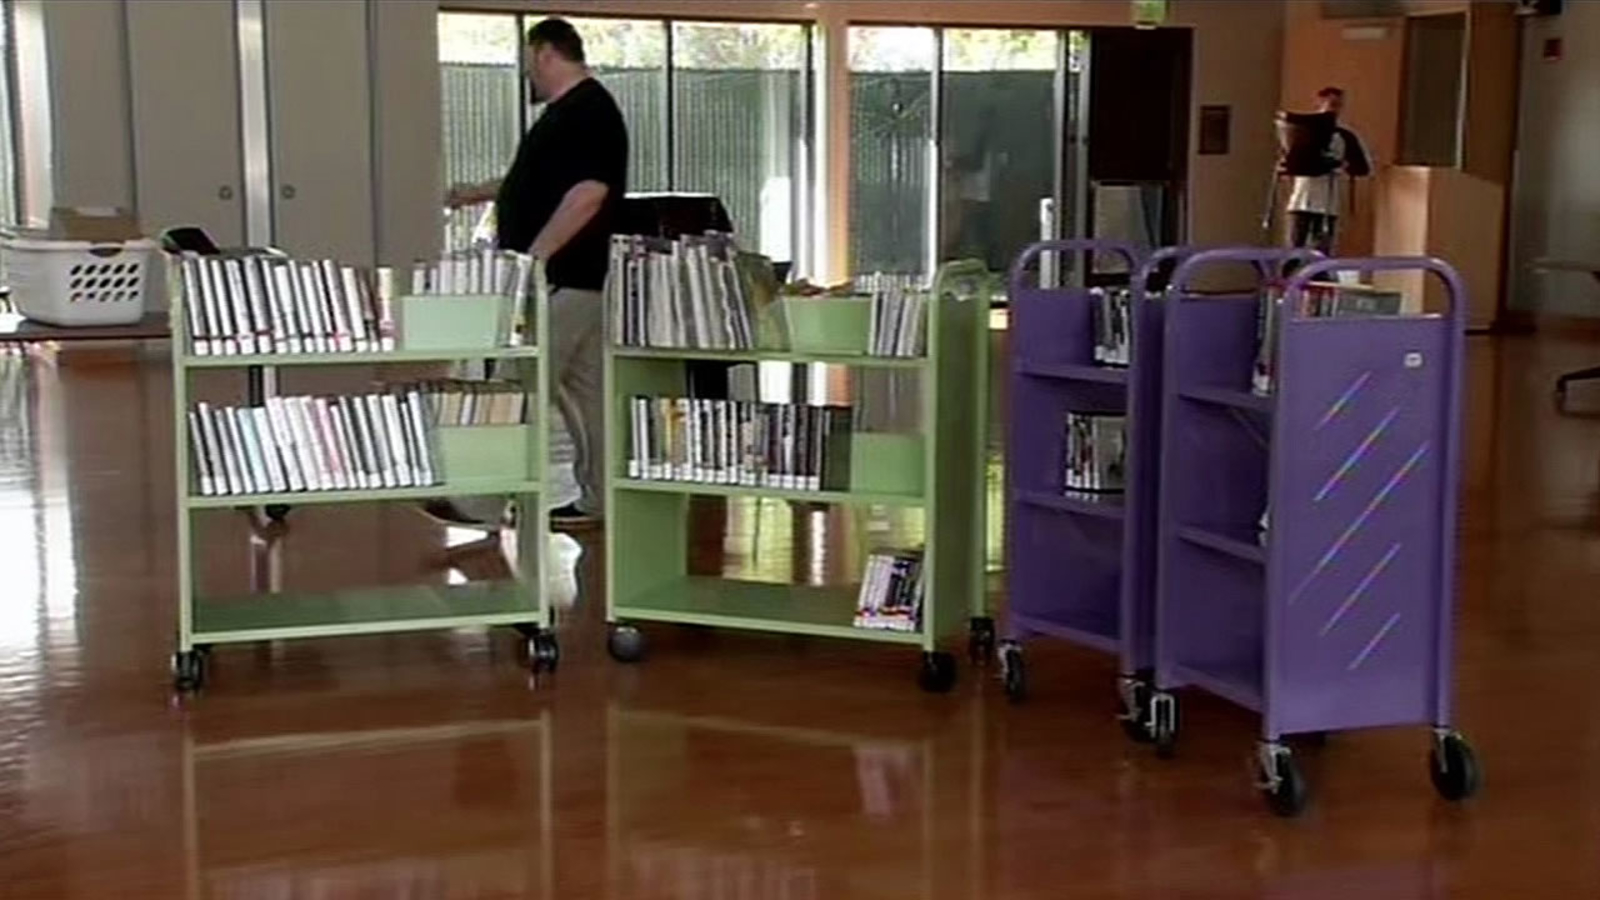 Cool Palo Altos Mitchell Park Library Closed After Bed Bugs Home Interior And Landscaping Spoatsignezvosmurscom